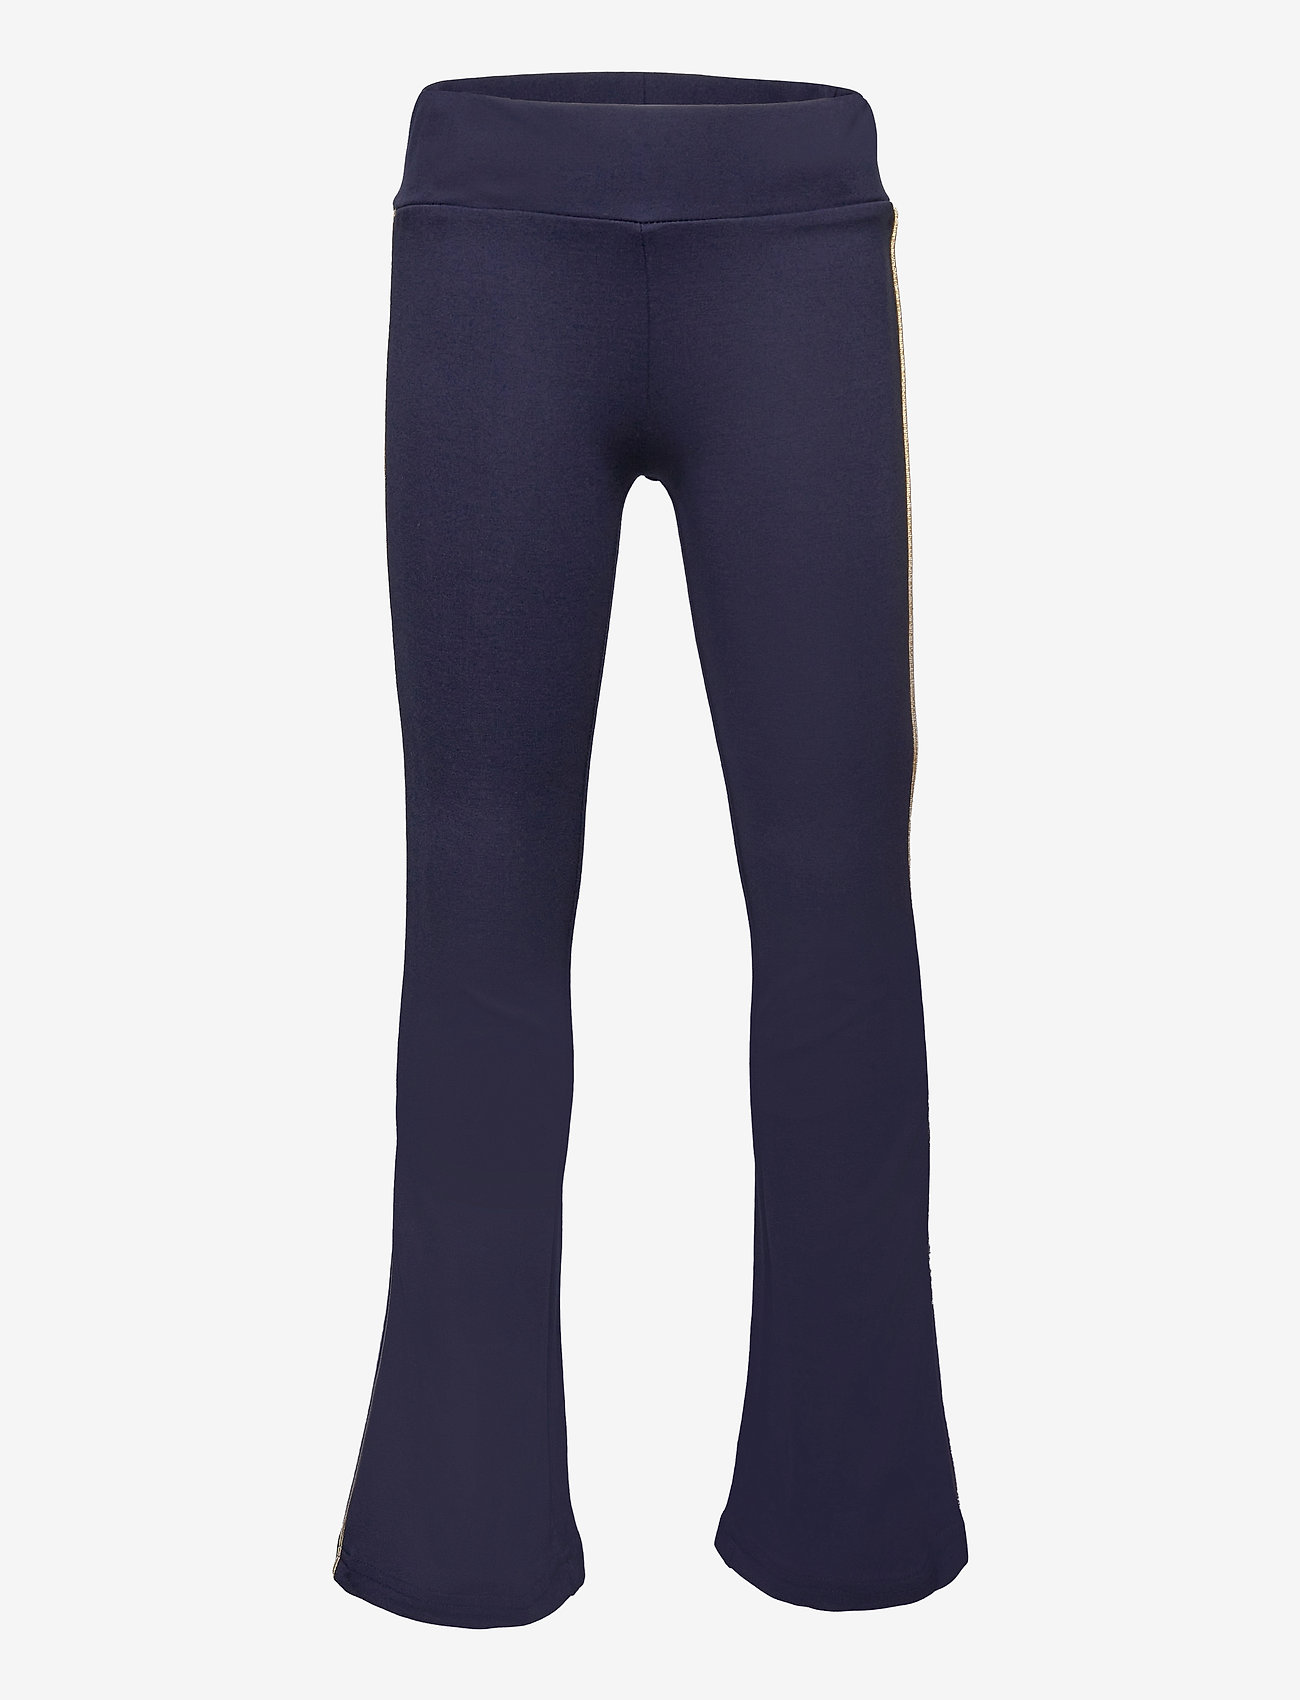 The New The New -  Rosa yoga pants